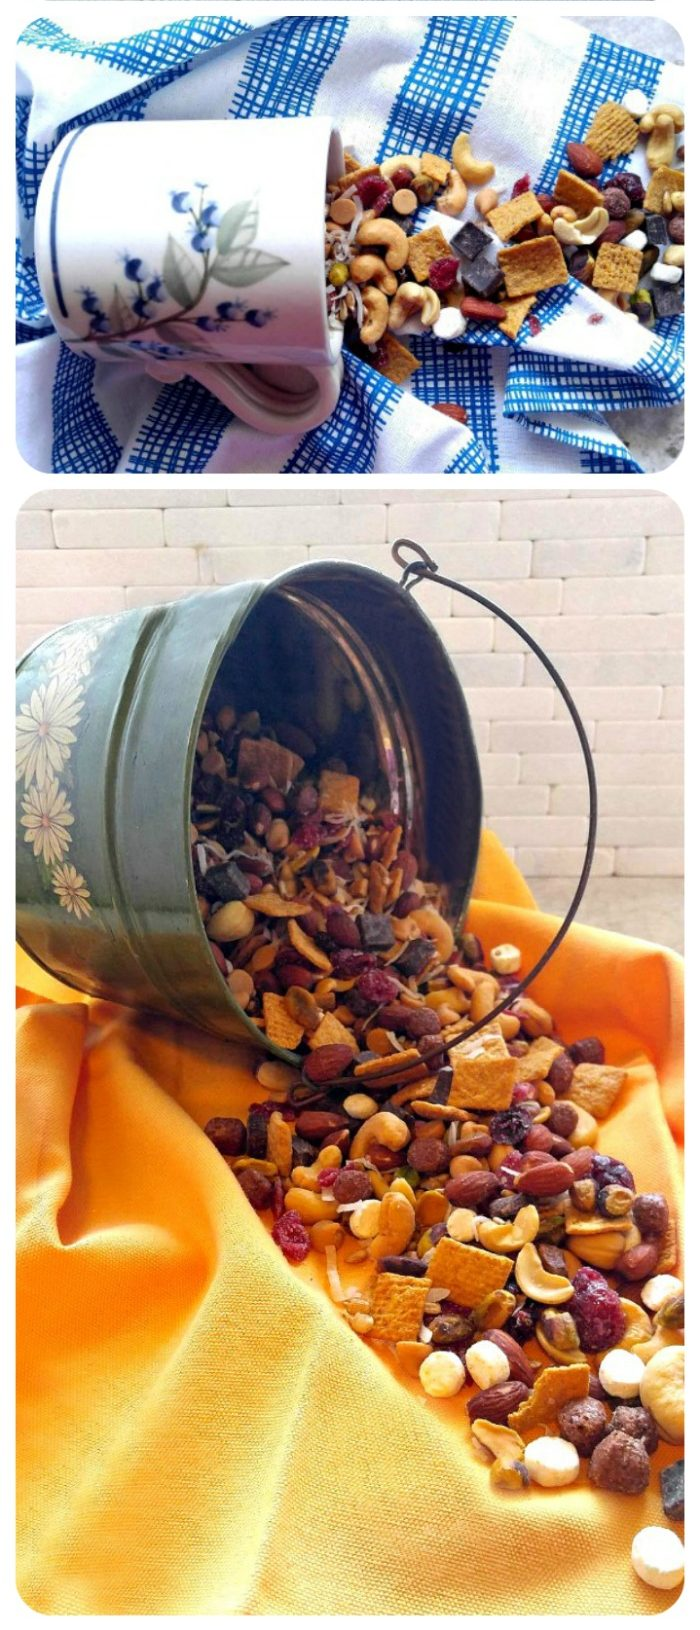 Flowered pil with trail mix pouring out and cup with trail mix beside it.